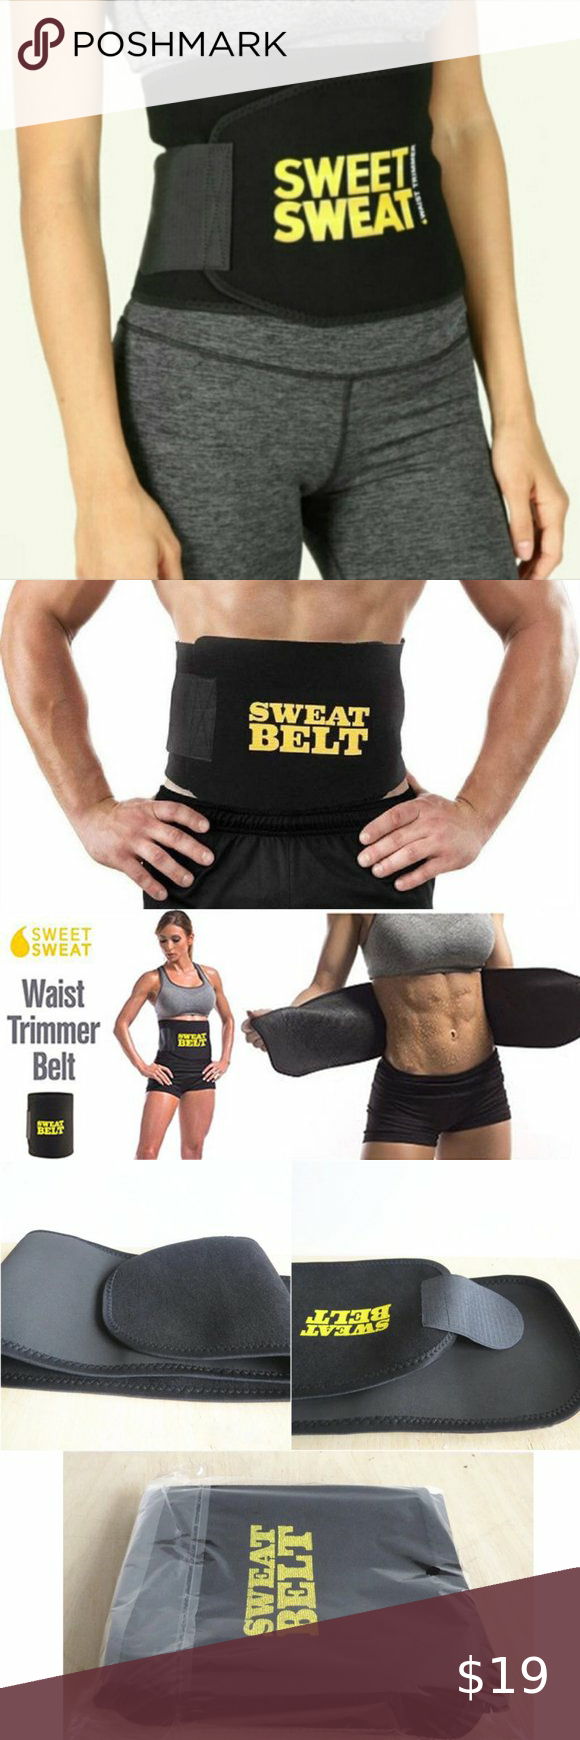 18+ Sweet sweat waist trimmer before and after ideas